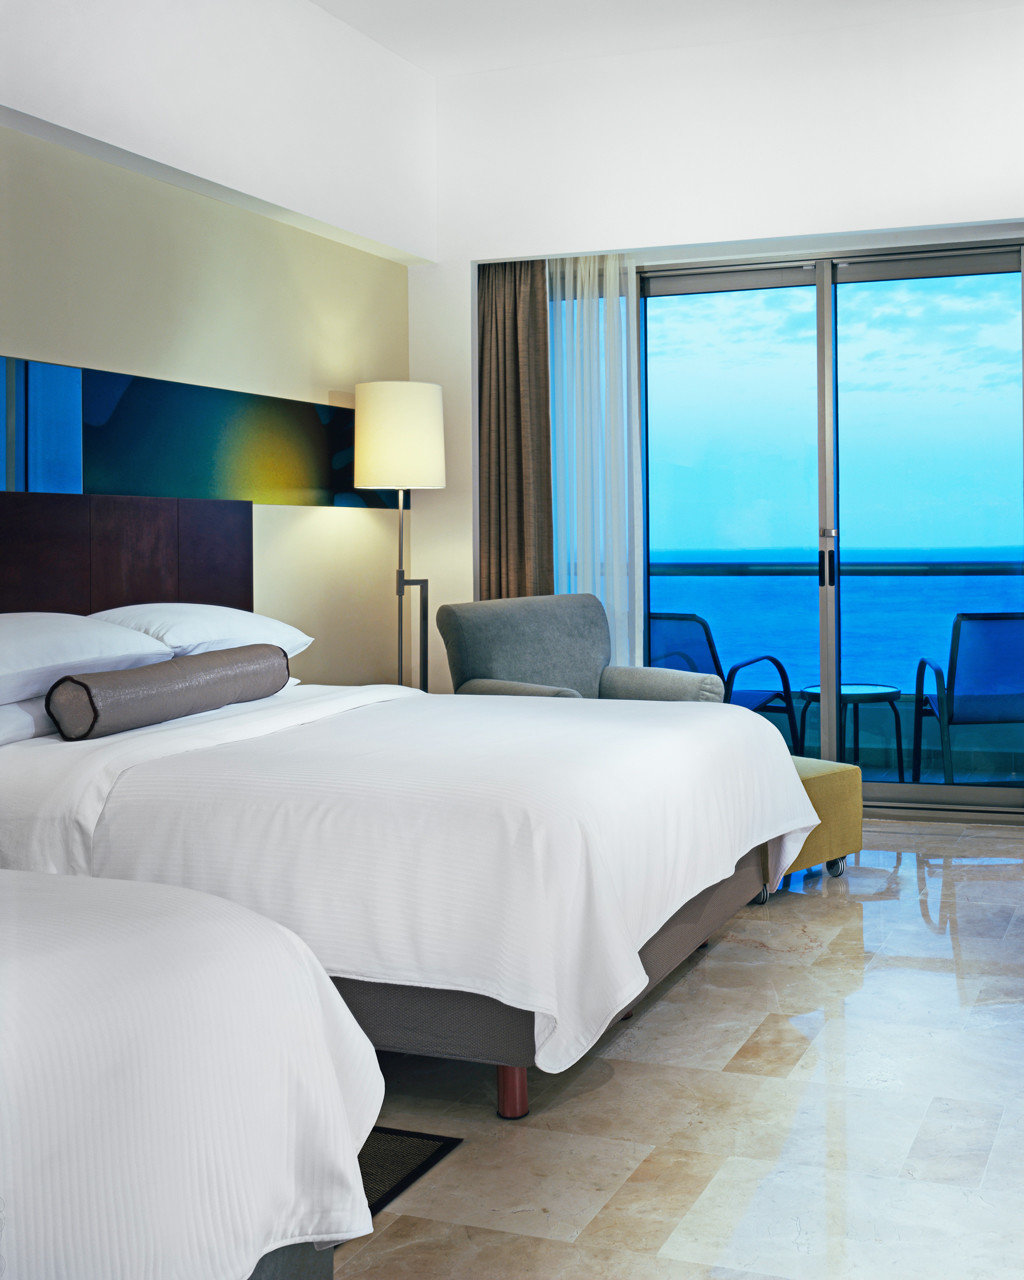 Adult-only All-Inclusive Resorts Beachfront Bedroom Cancun Hotels Living Luxury Mexico Modern bed indoor floor wall hotel room ceiling property Suite interior design real estate estate living room apartment furniture night